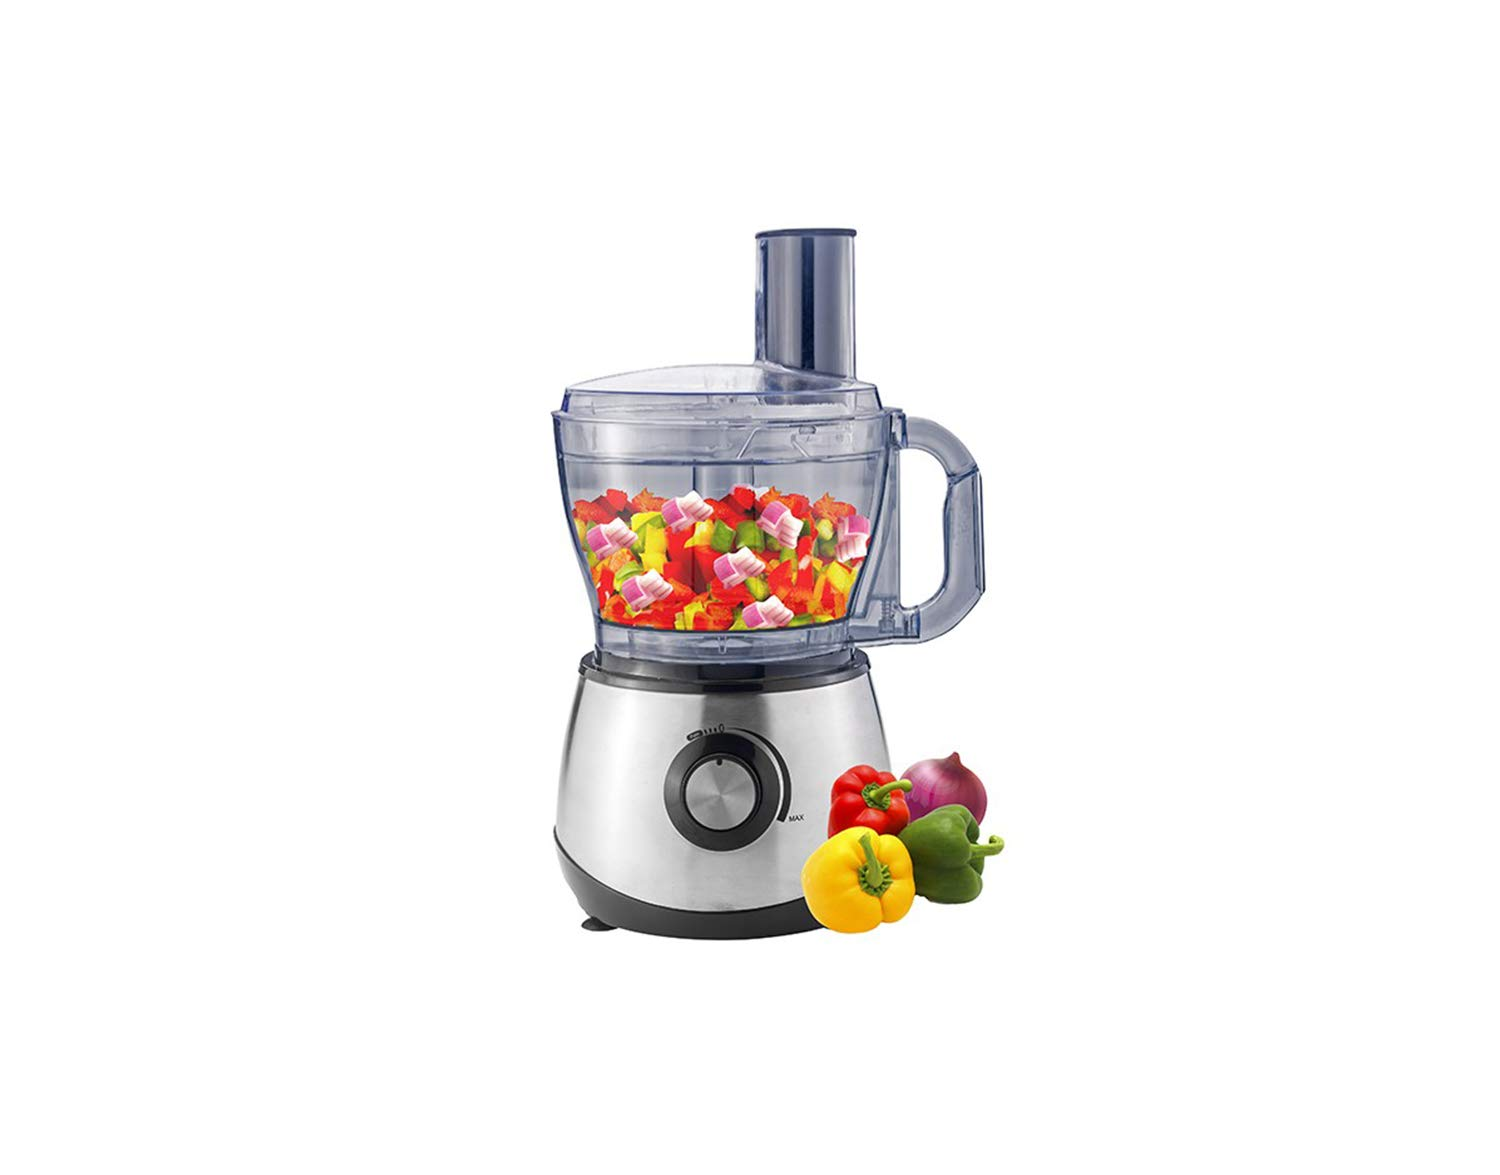 12 CUP - 5 IN 1 MULTI - FUNCTION FOOD PROCESSOR